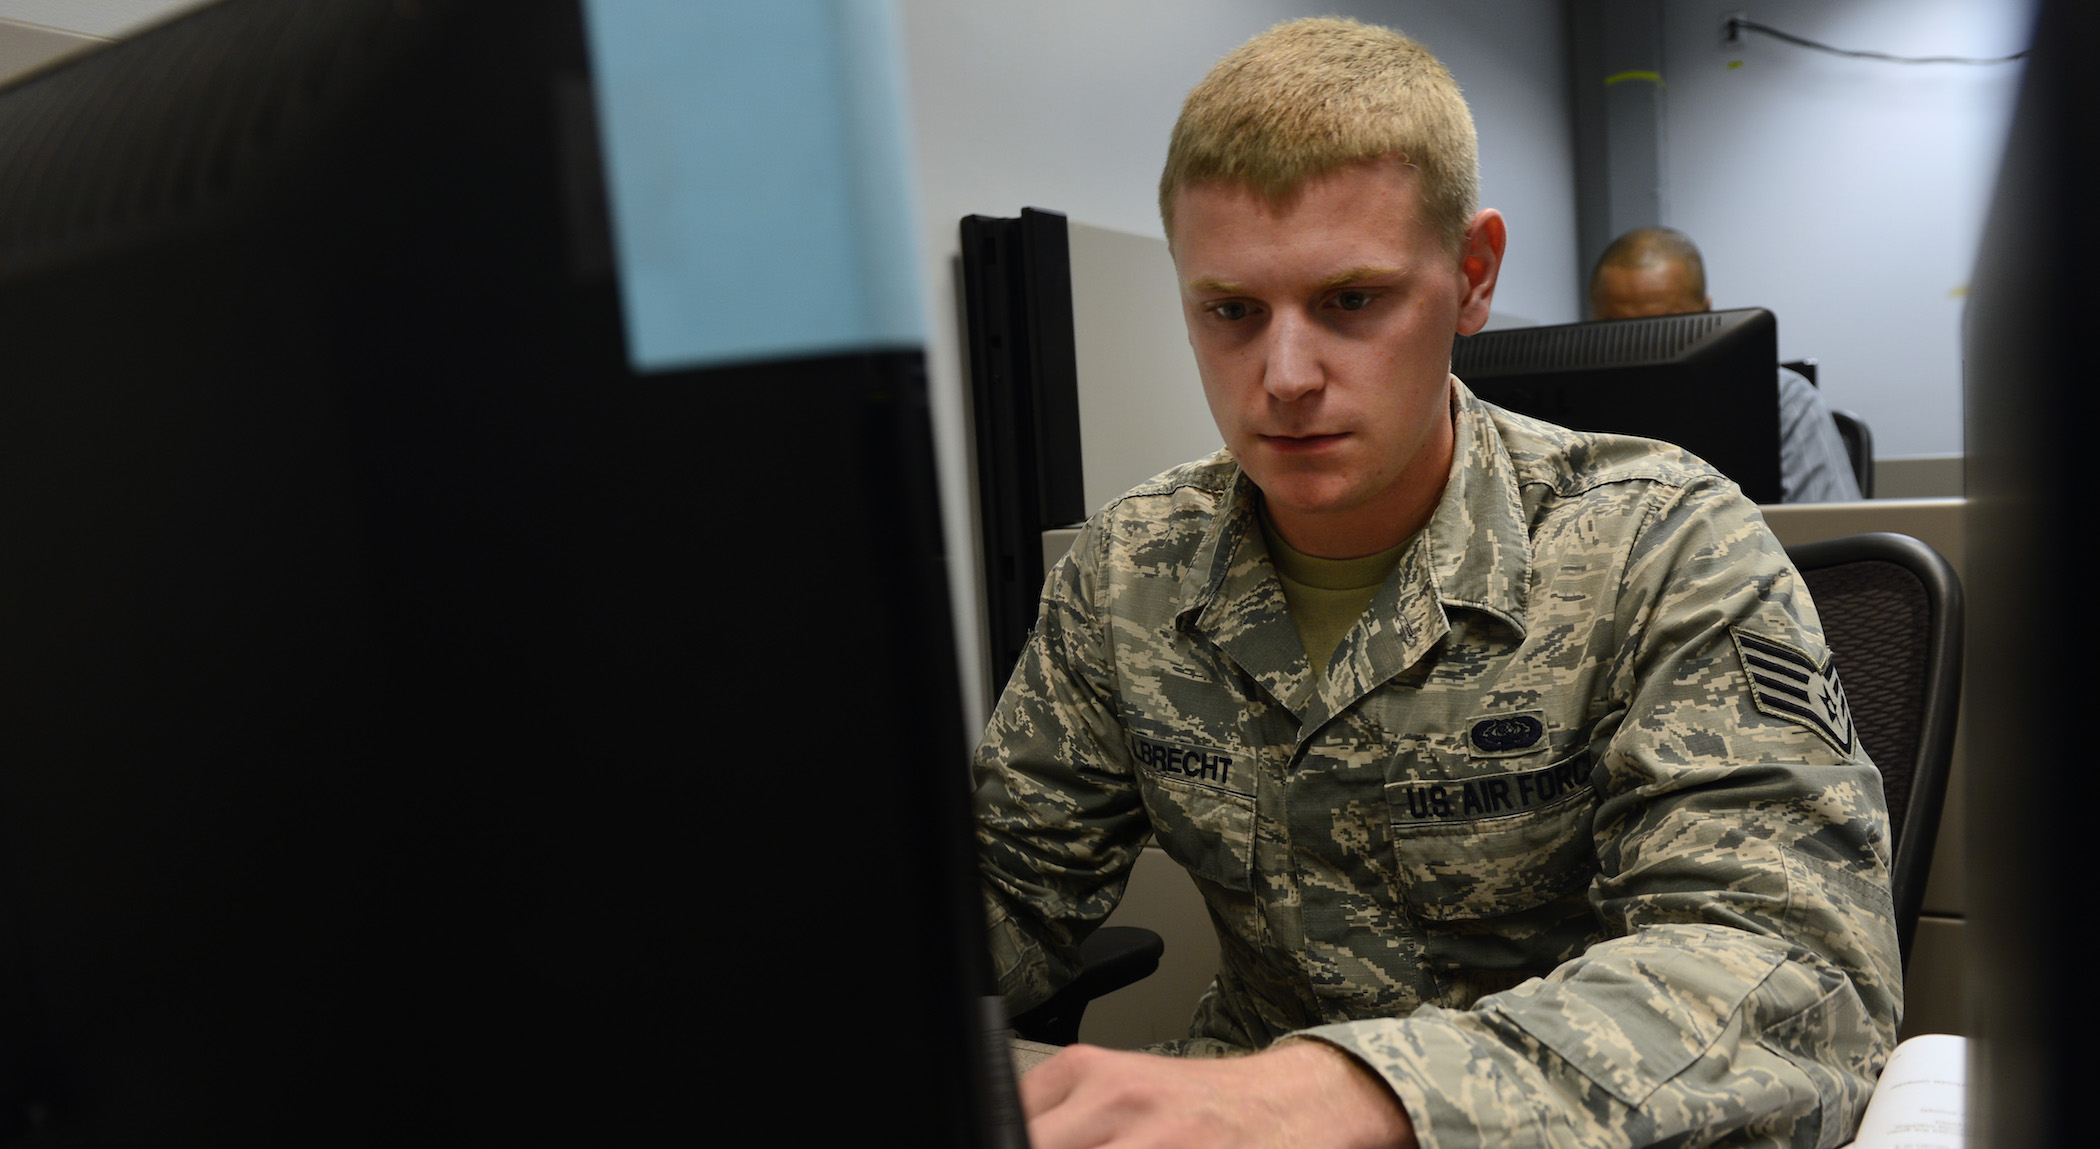 Air Force opens itself up to hacking, again - FedScoop